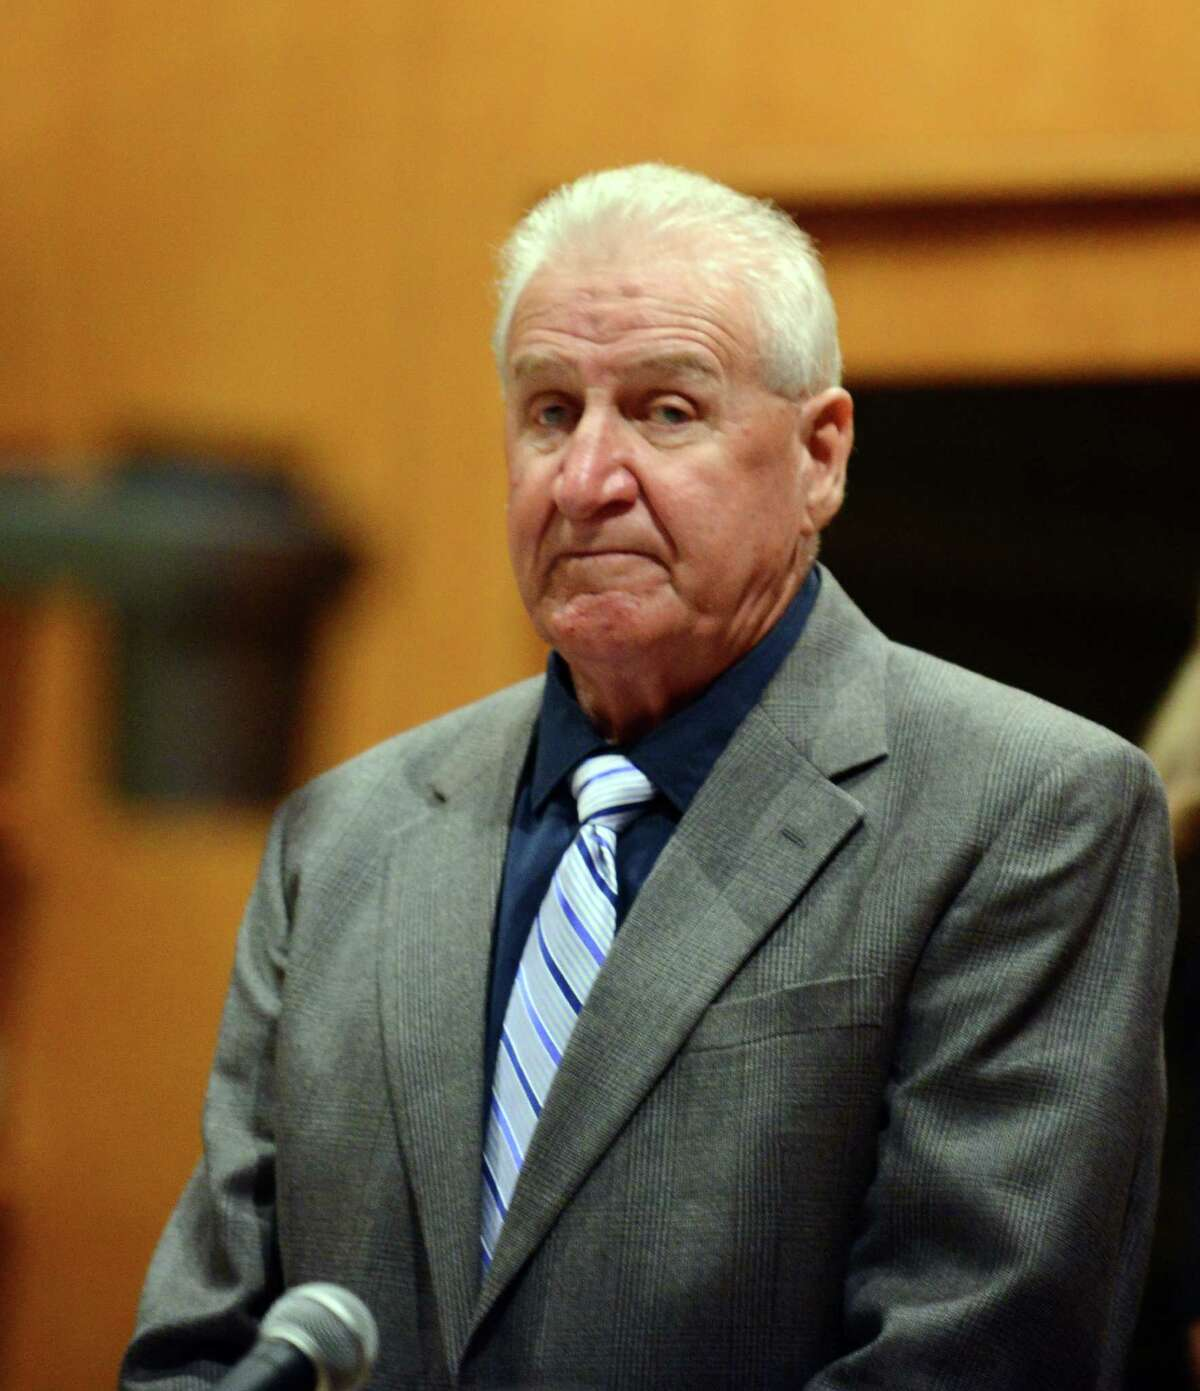 Dominic Badaracco Sr. stands in court on the second day of his trial in Bridgeport Superior Court, in Bridgeport, Conn., Tuesday, June 25, 2013. Badaracco is accused of offering a $100,000 bribe to Judge Robert Brunetti in 2010.